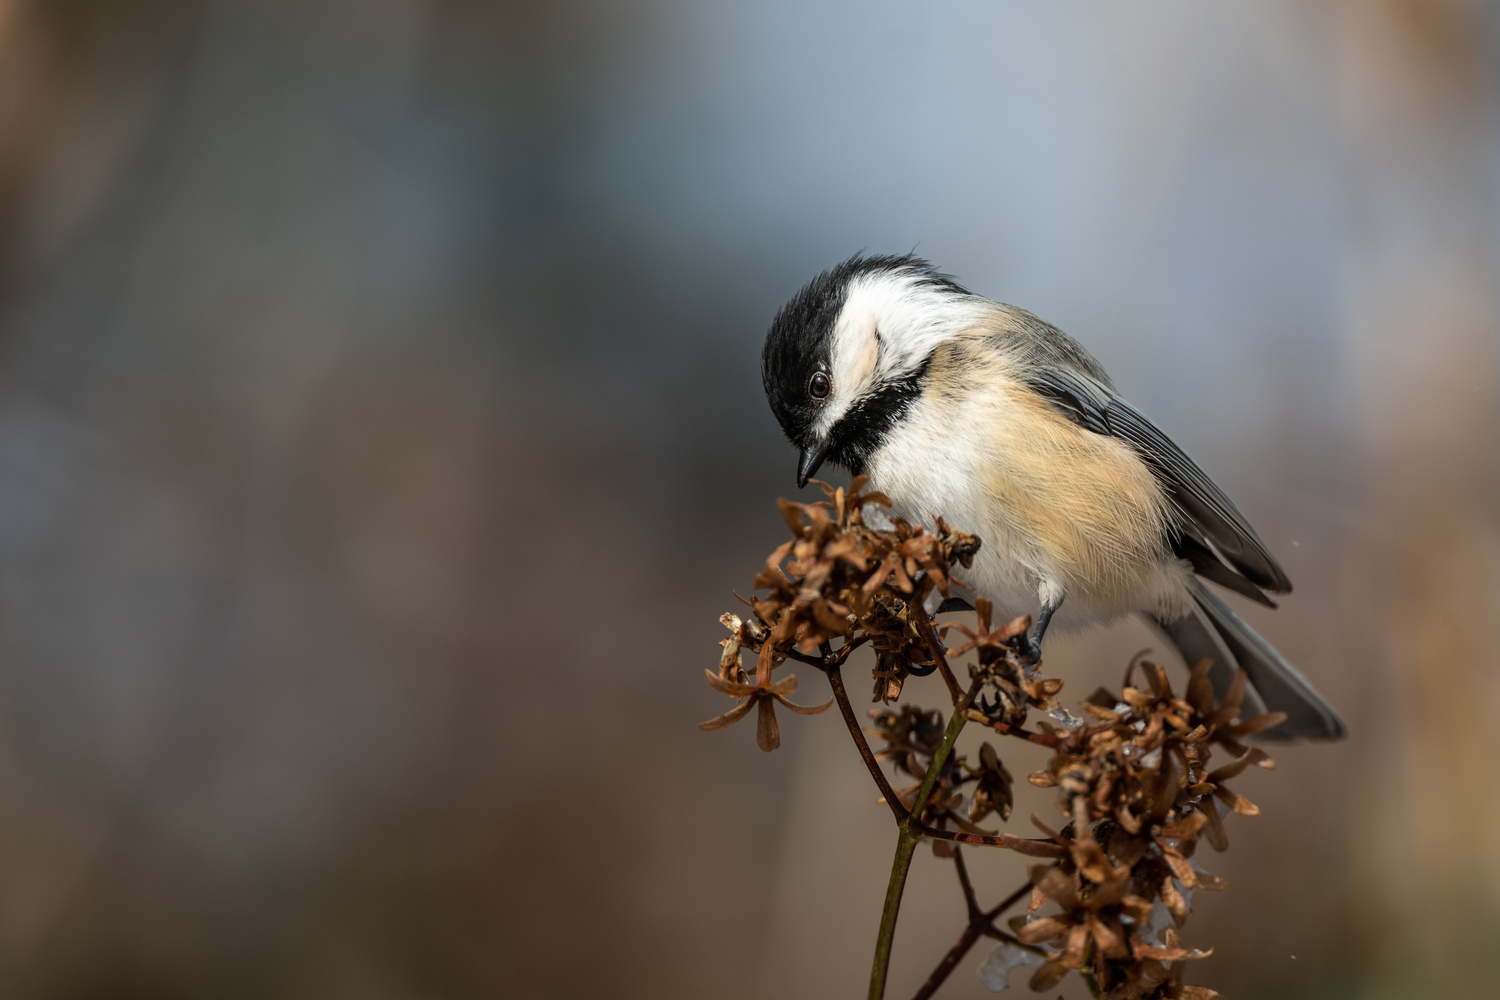 Chickadee by Skyler Ewing